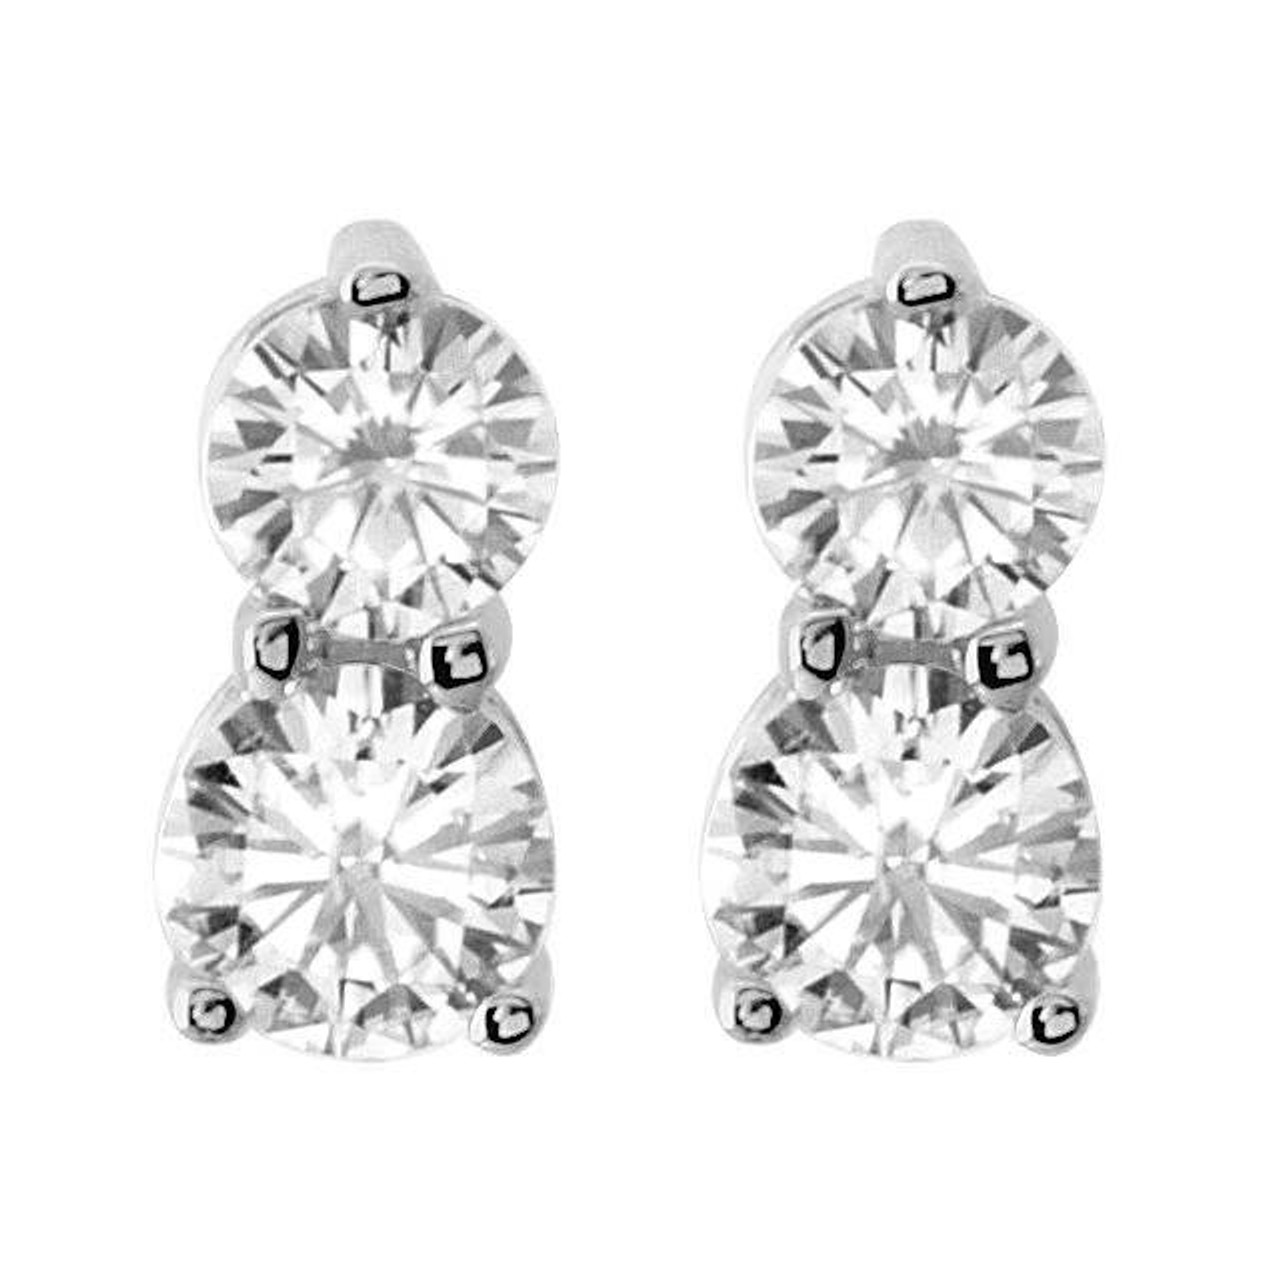 fa357ef8e9b1c 1/2CT Forever Us Two Stone Diamond Studs Womens Earrings 14K White Gold  (G/H, I1)